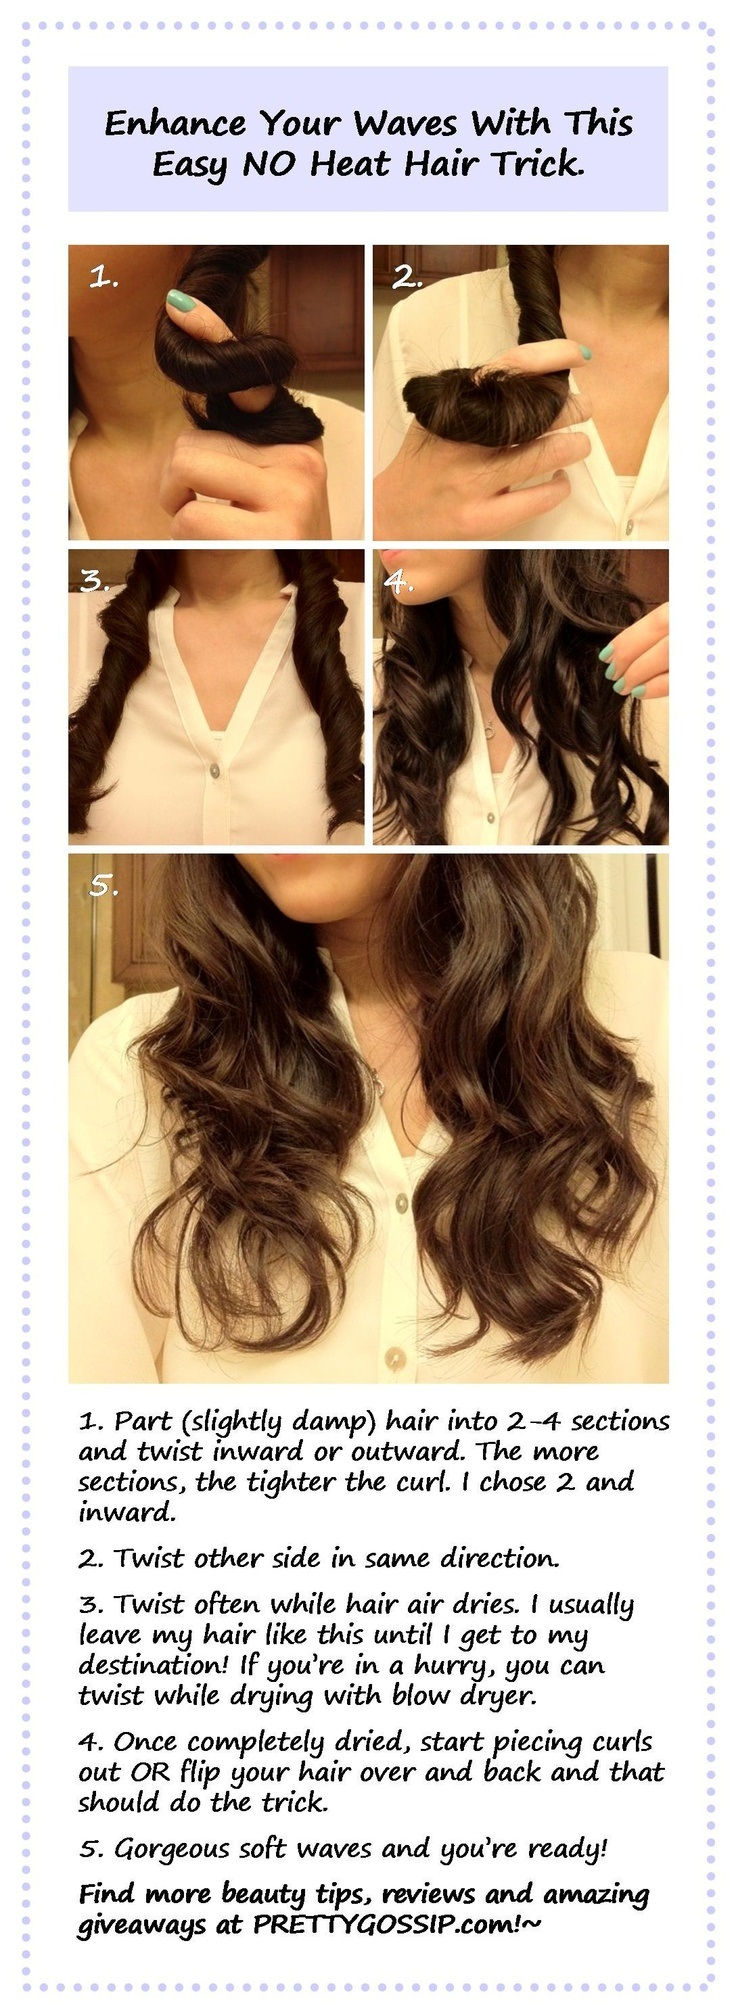 11 Ways To Have Curly Hair Without Heat Listinspired Com Part 2